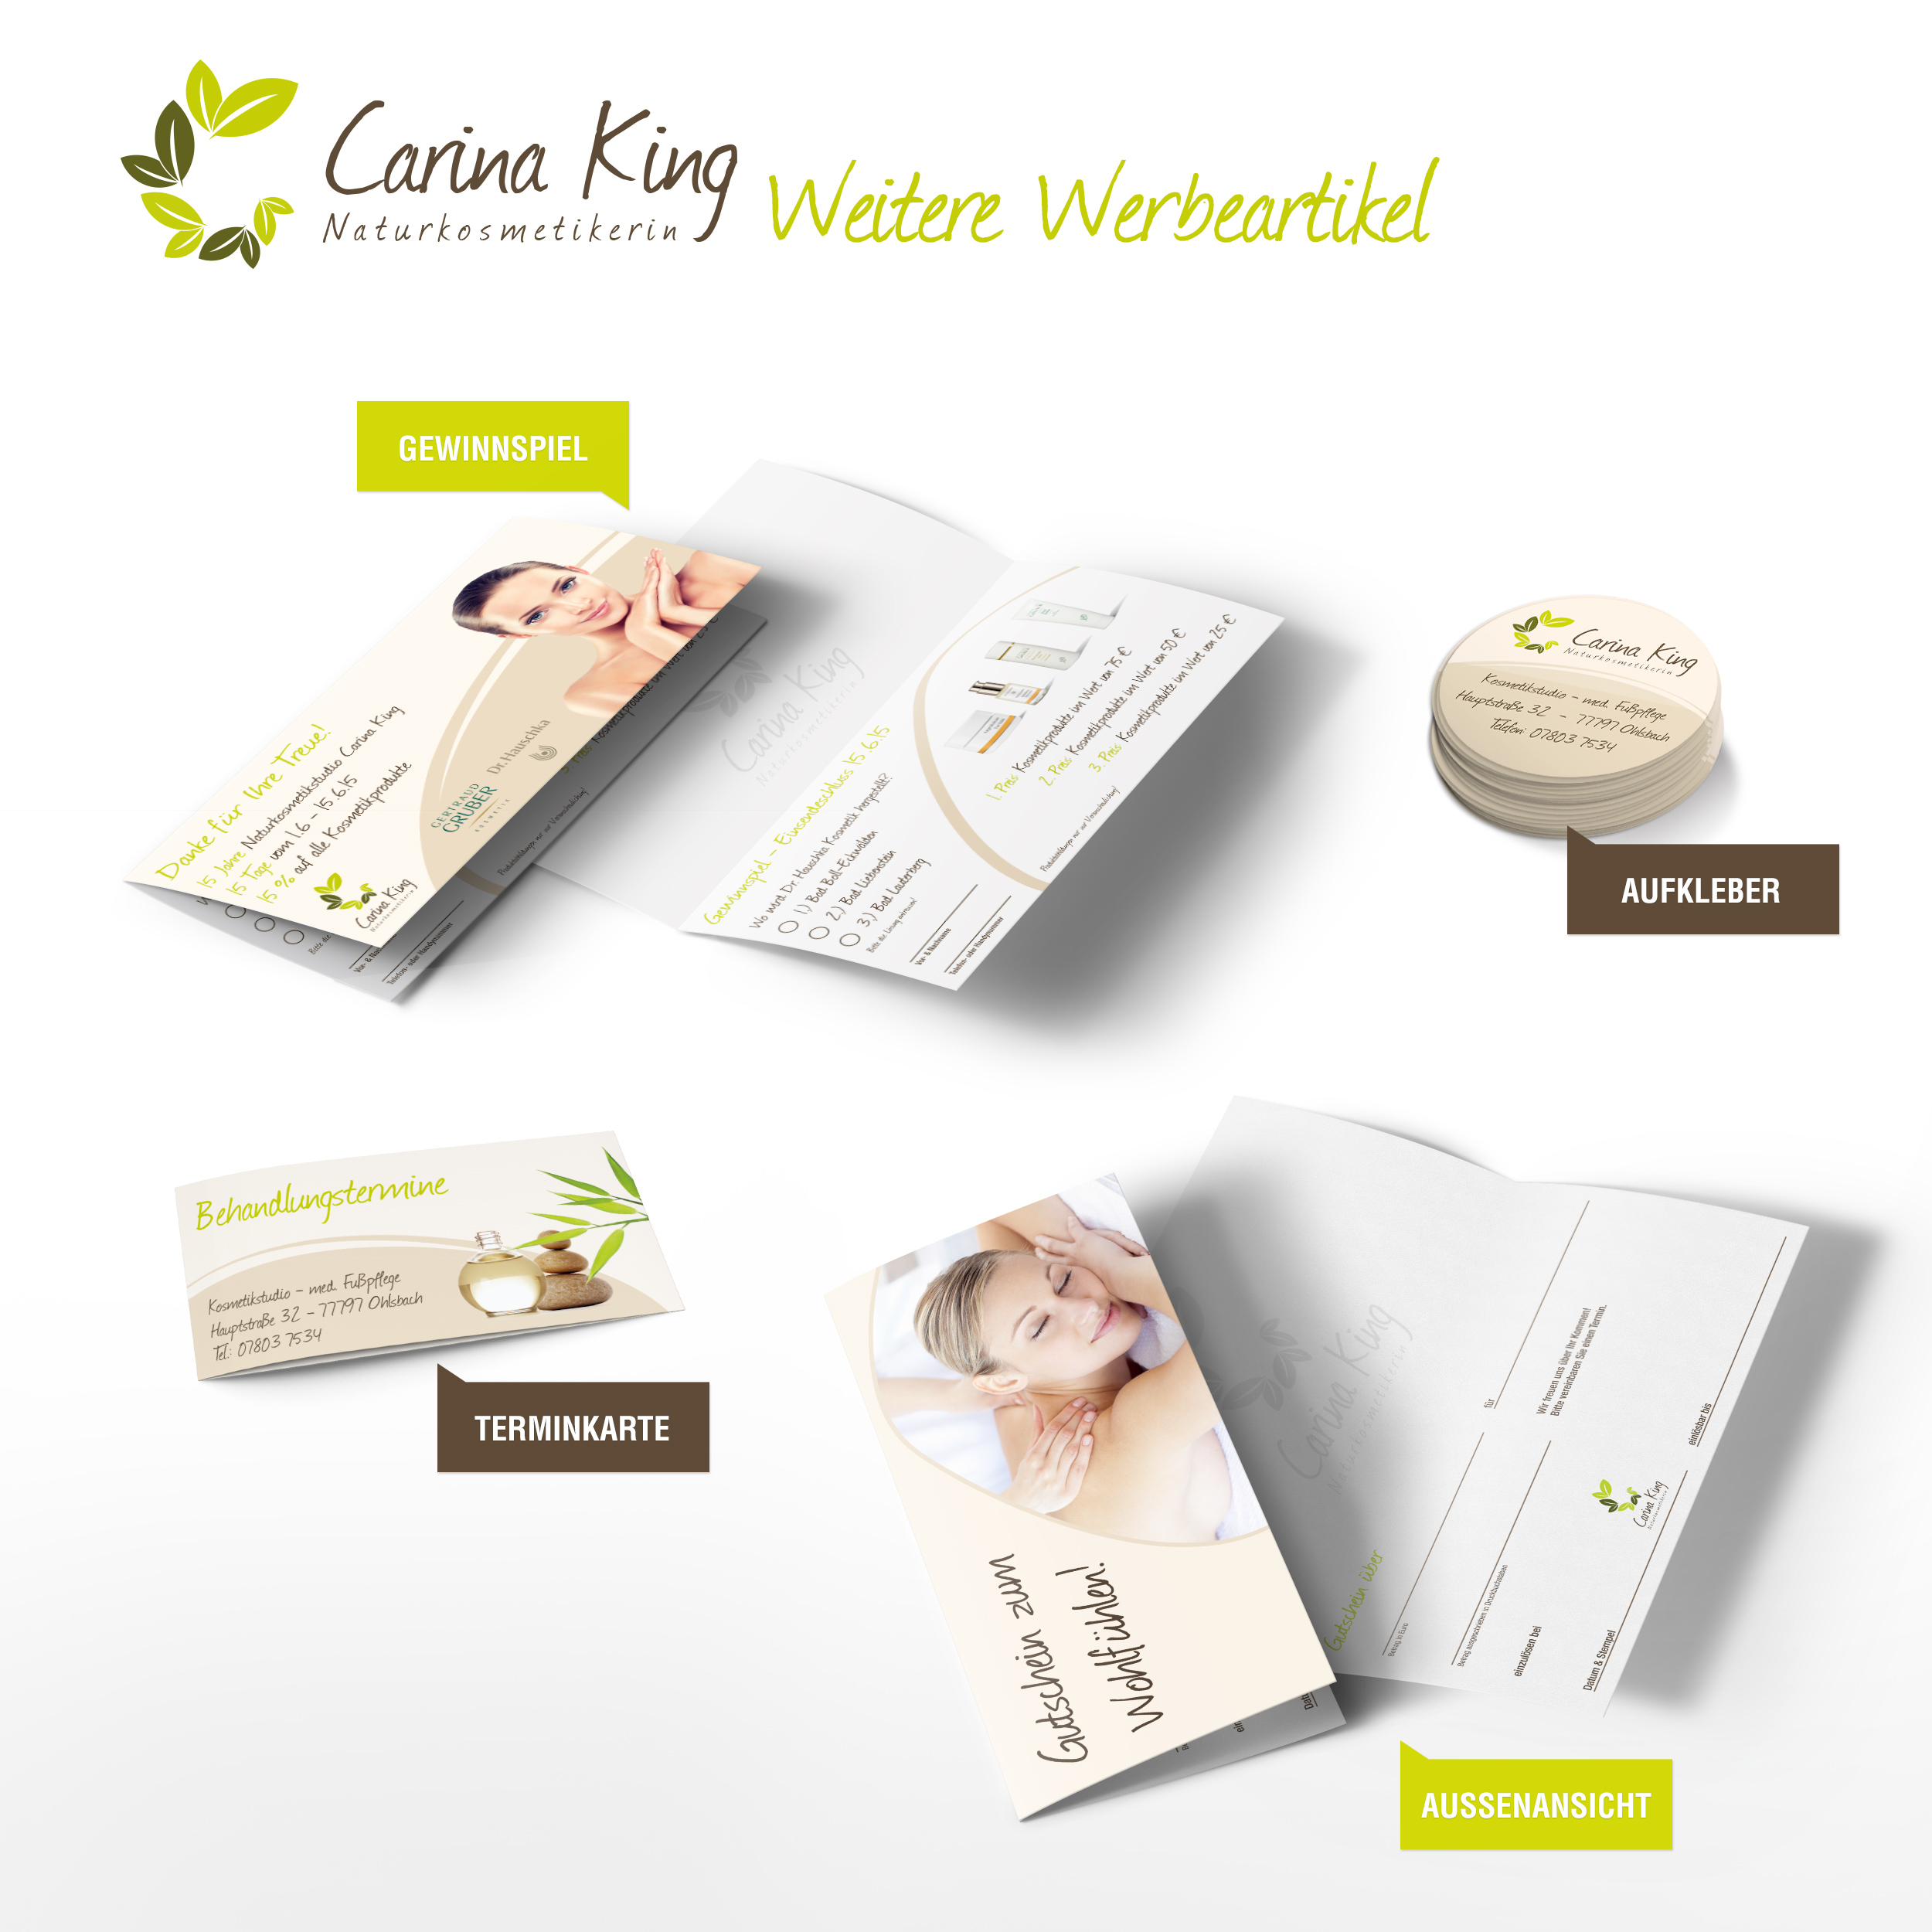 Carina King - Werbeartikel by h1xndesign